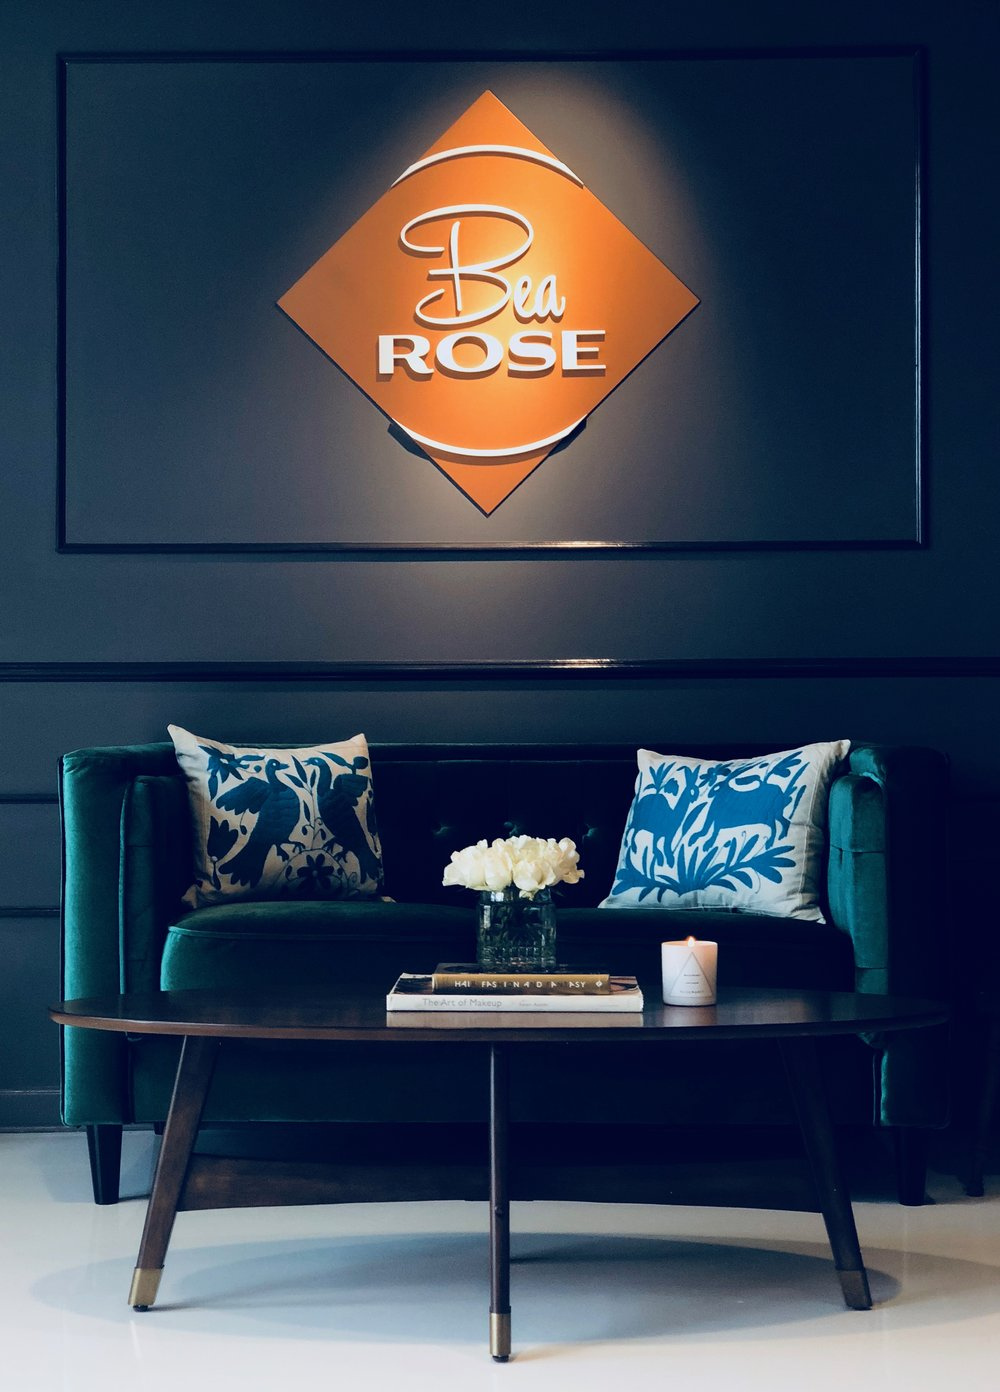 Bea Rose Salon - and ELSAMARIT team up for some self and soul care